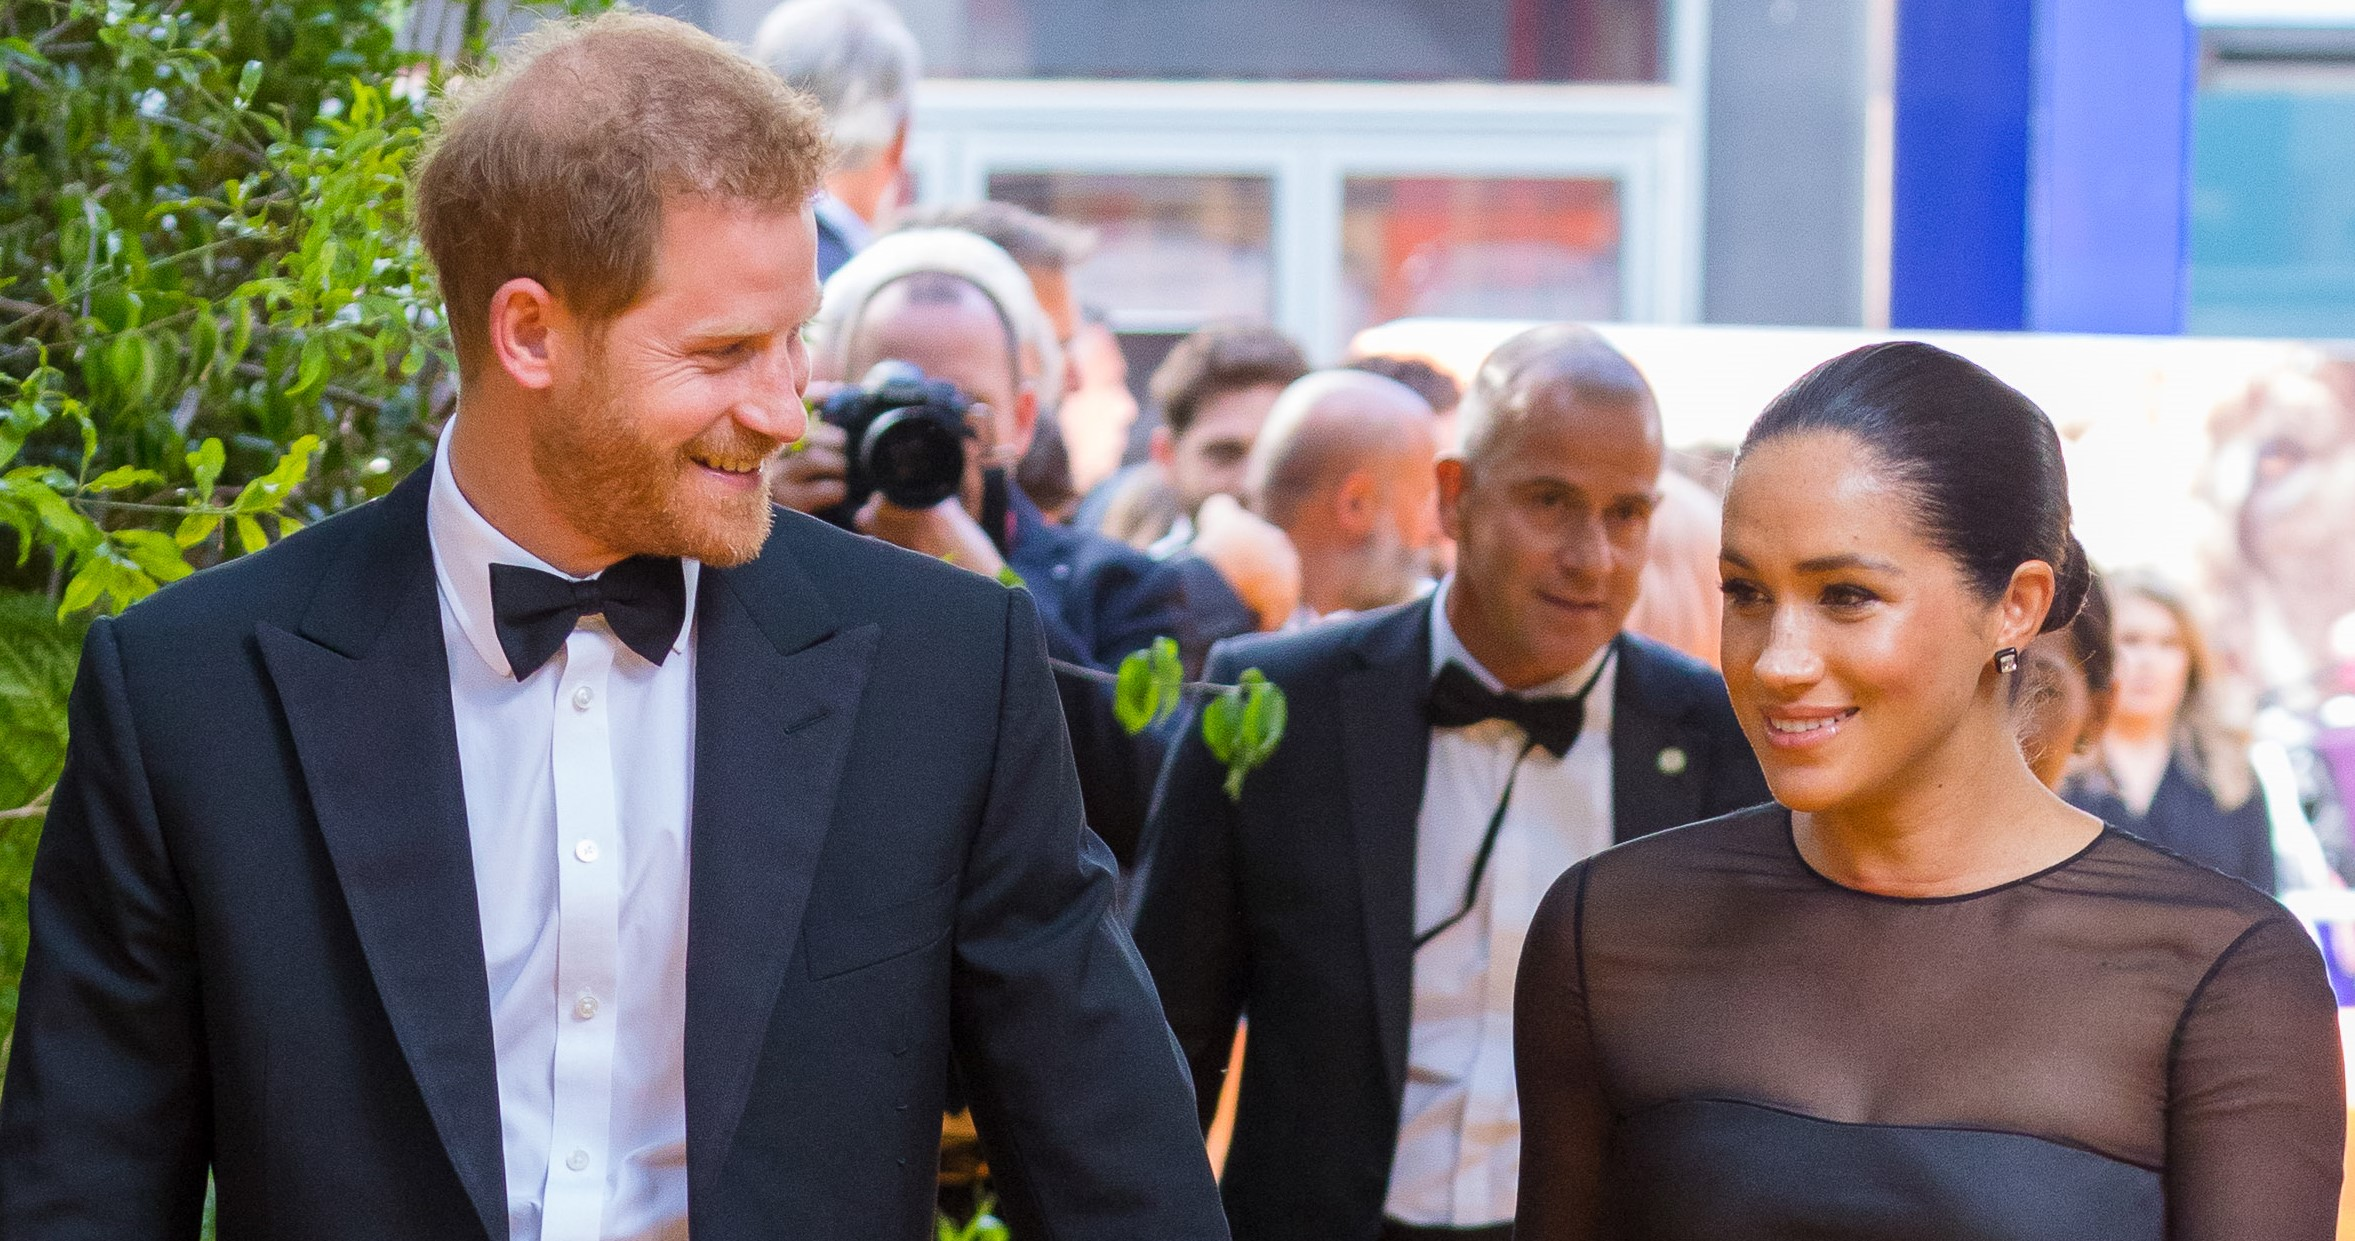 Harry and Meghan 'will announce second pregnancy very soon'